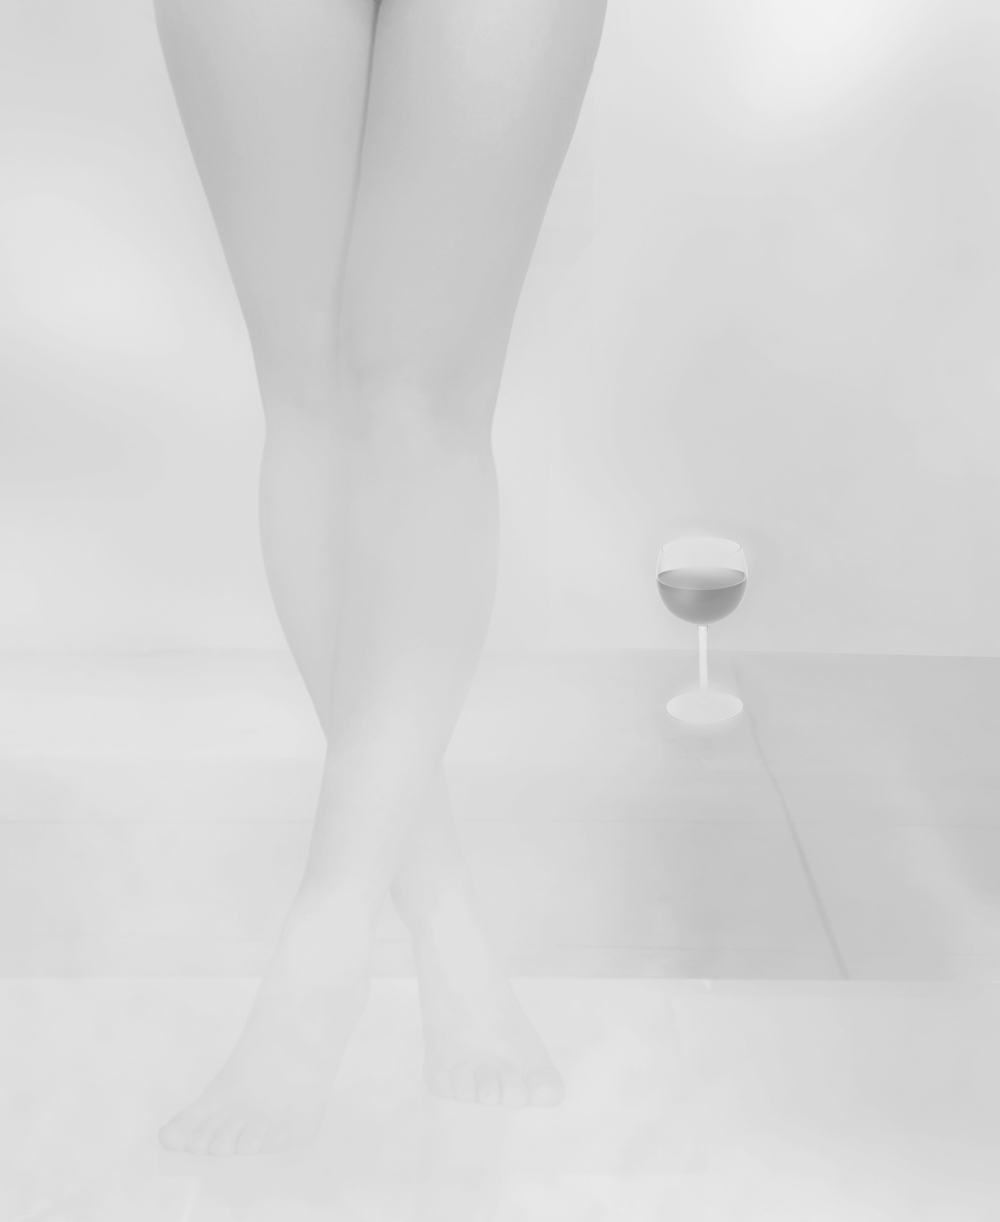 Woman's legs in shower mist